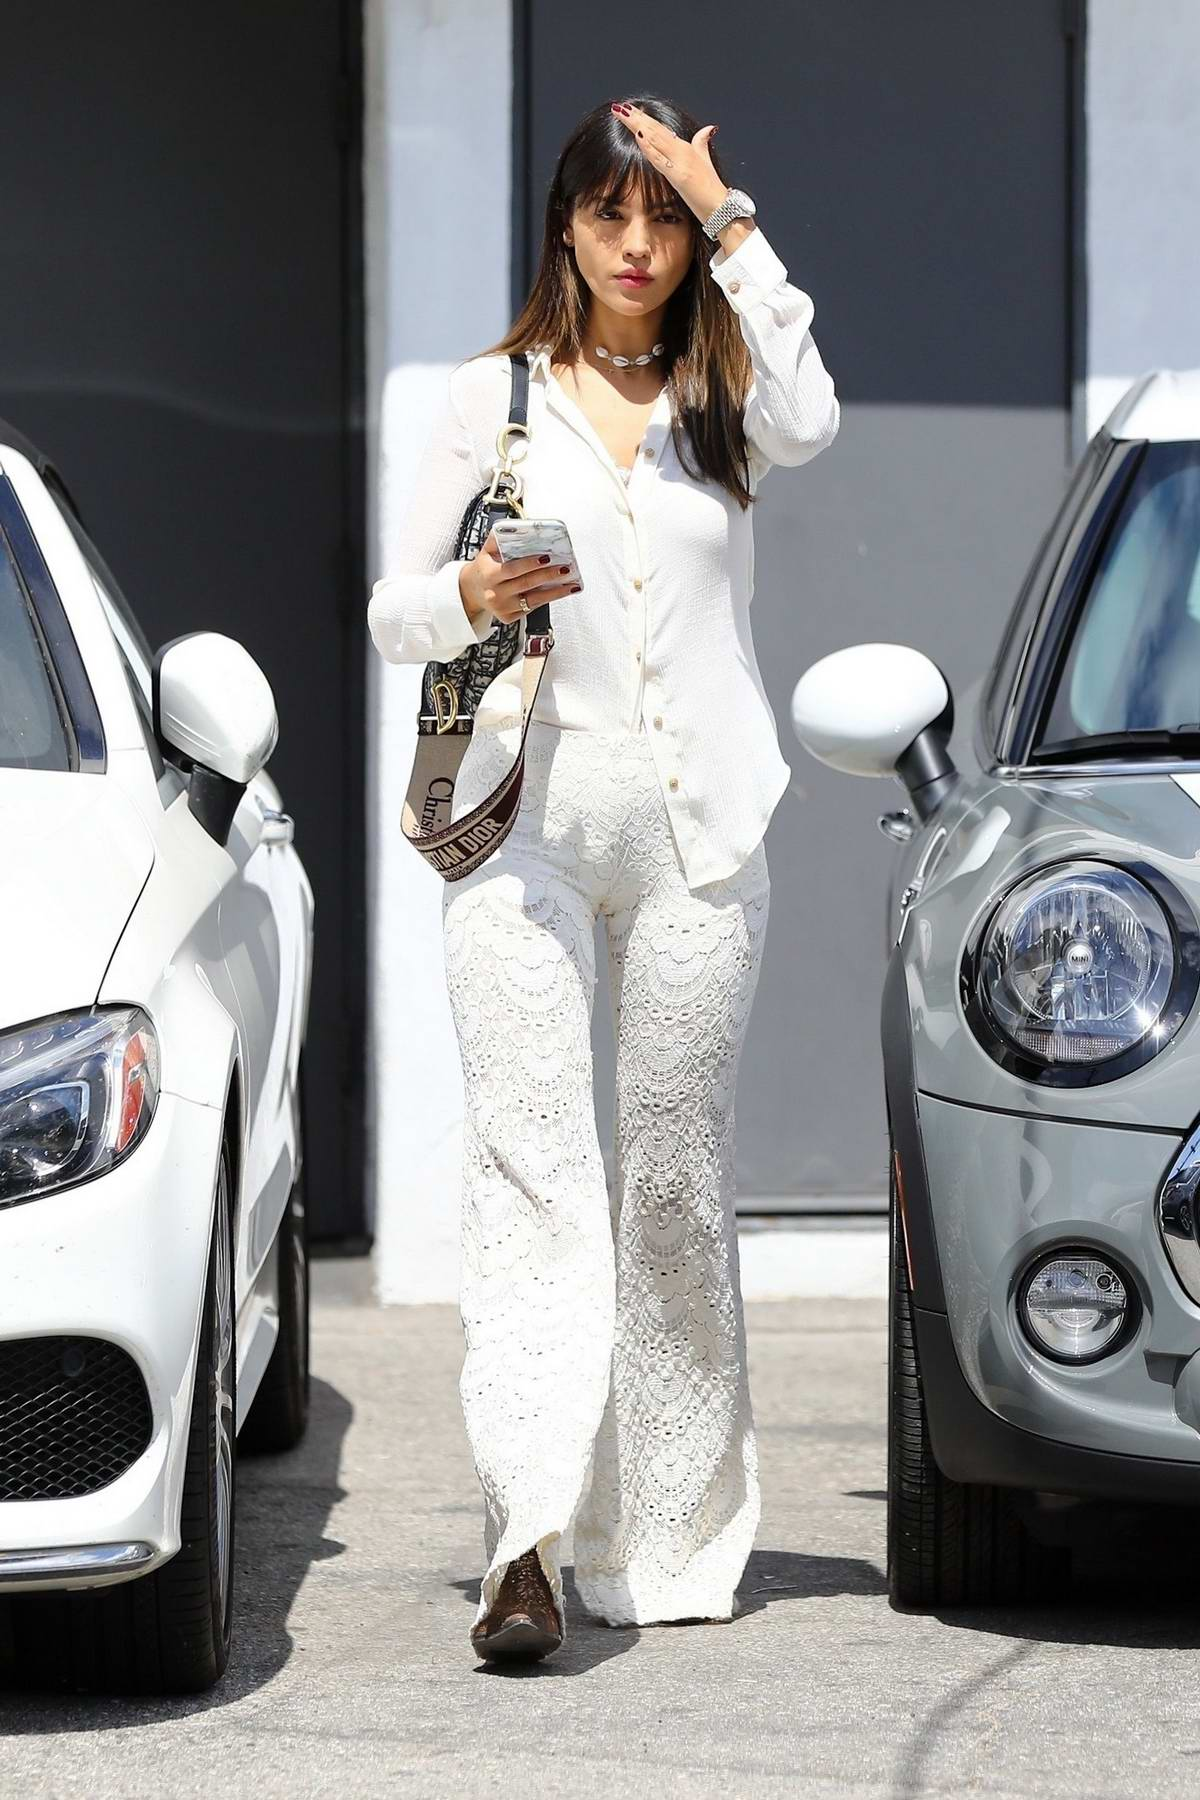 Eiza Gonzalez dons a white shirt with matching crochet trousers and a Christian Dior tote bag while leaving a hair salon in Los Angeles